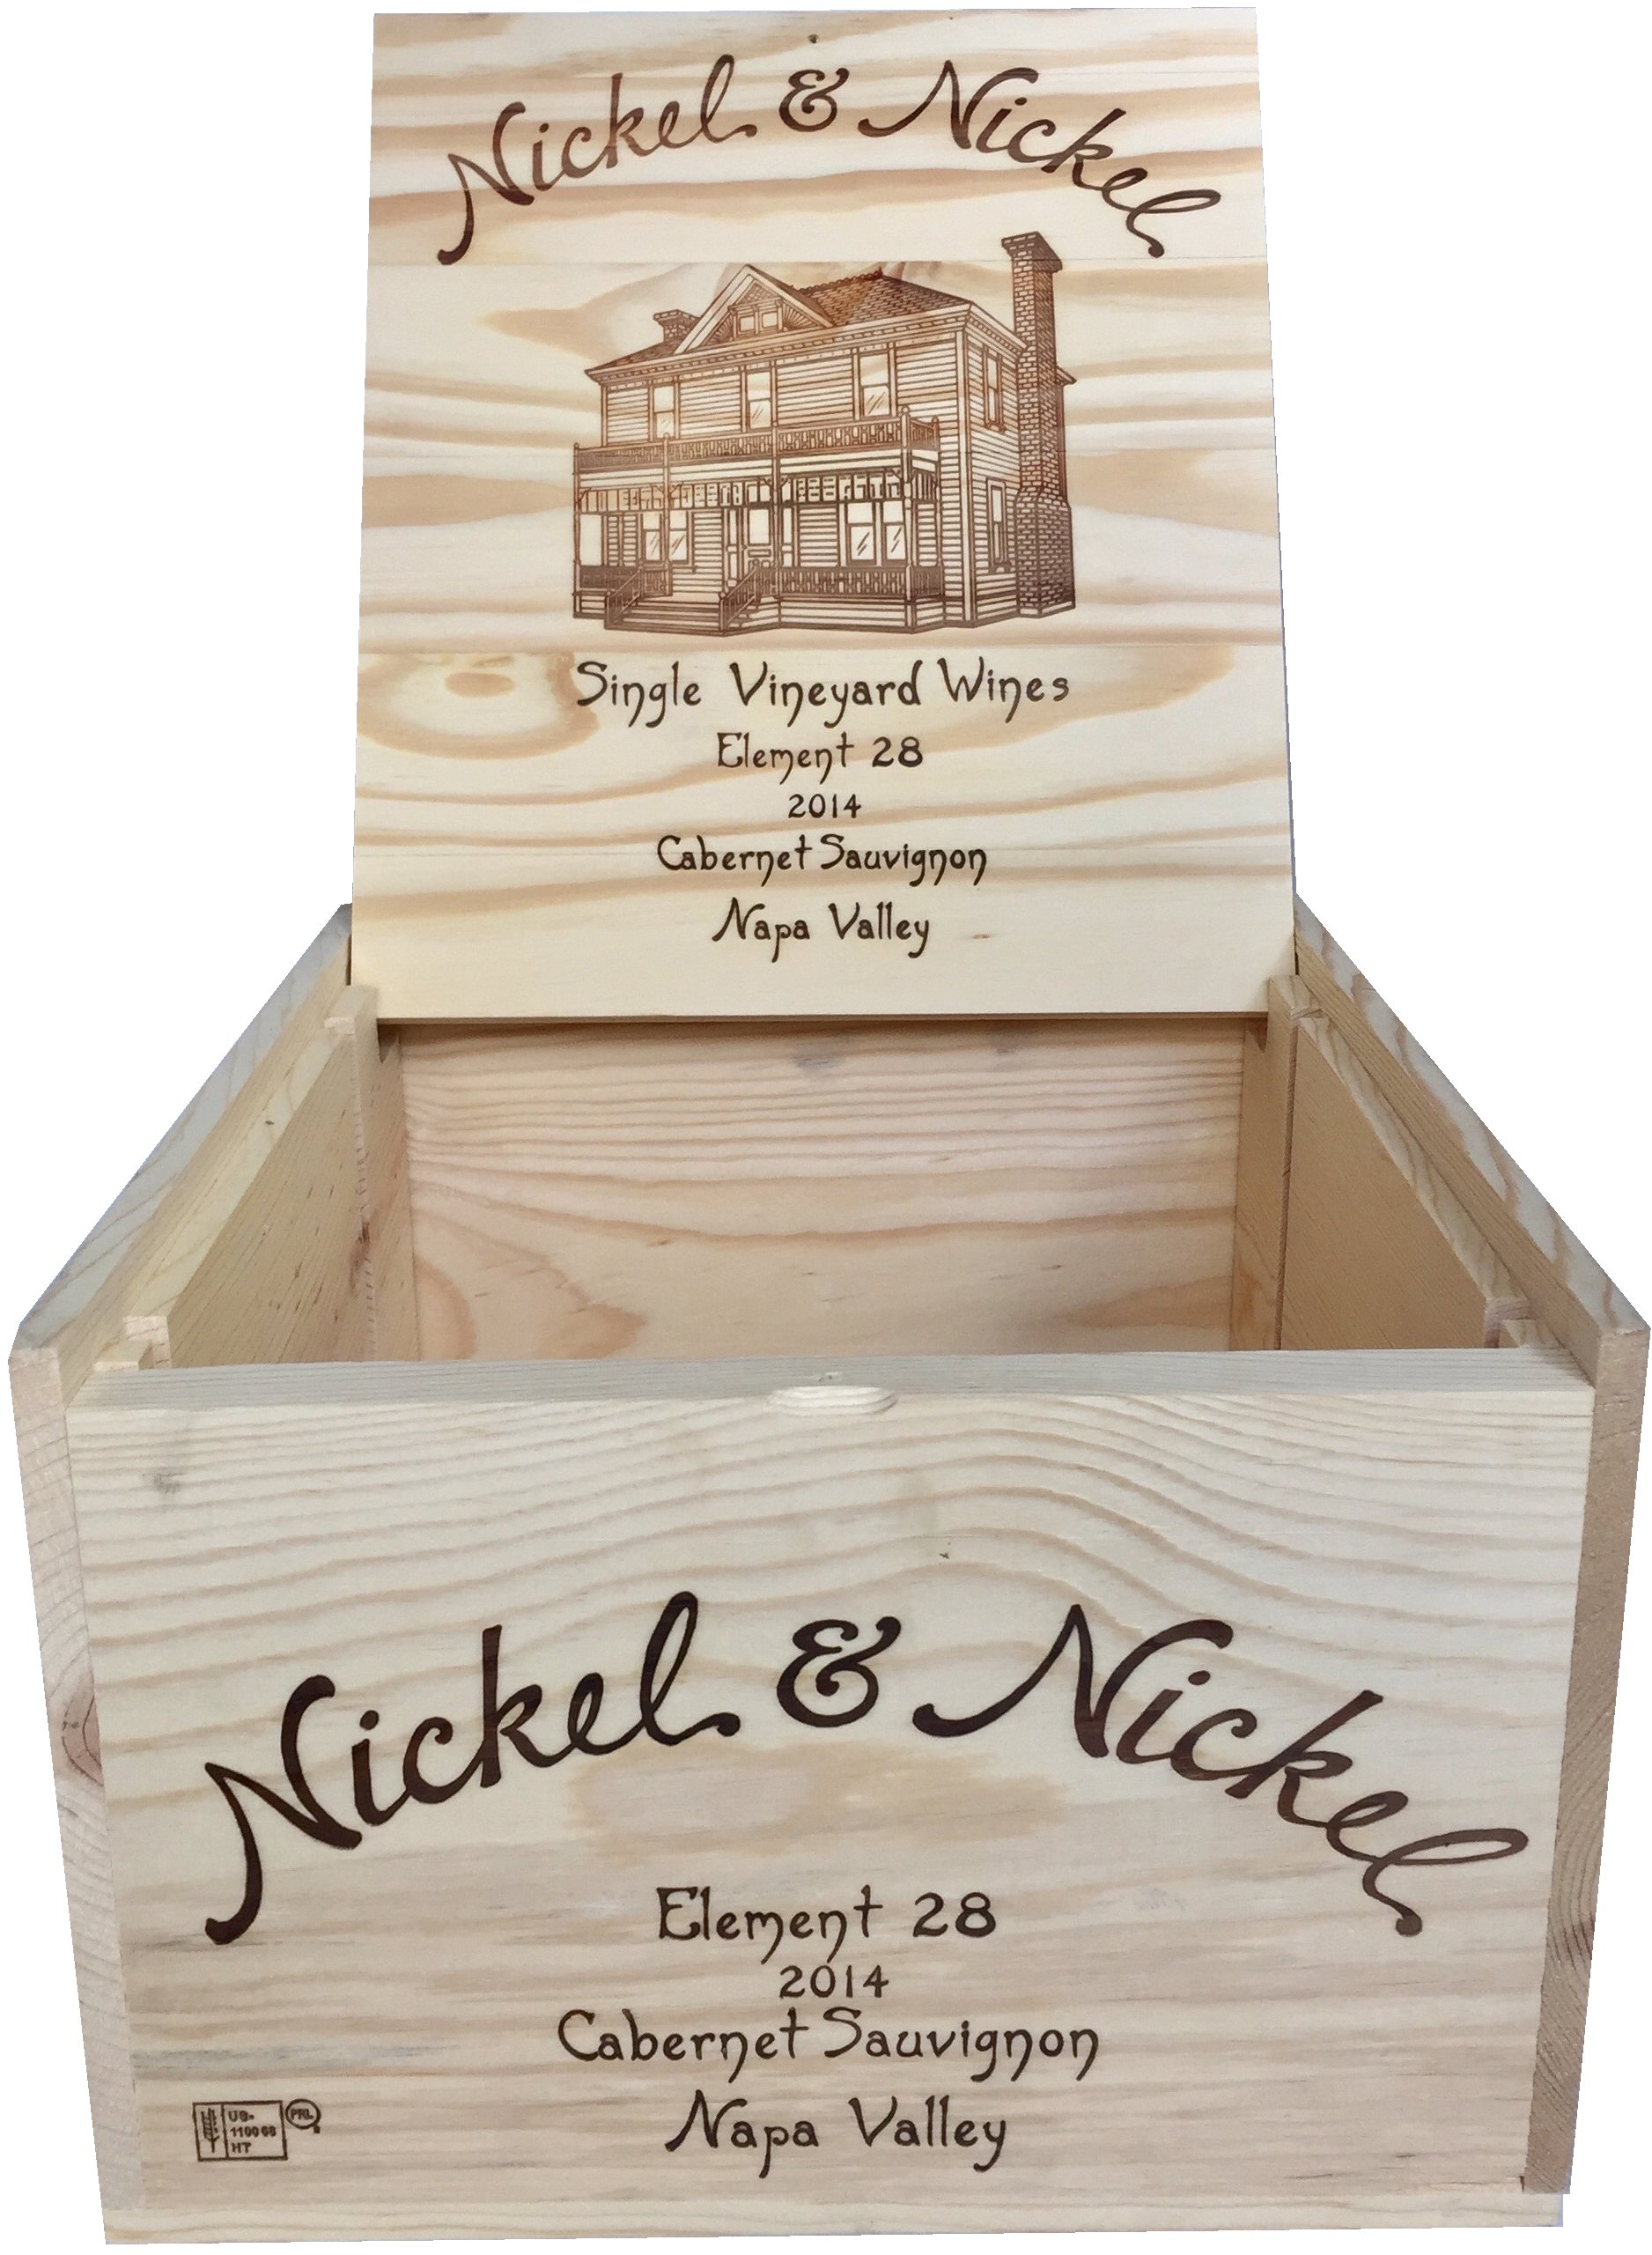 Vineyard Crates Wine Crate - Original Nickel & Nickel Decorative Wooden Wine Box with Hinged Lid and Logos On 5 Sides - Multiple Sizes - For Wedding, DIY or Wine Storage (14x12x8 NO Inserts) by Vineyard Crates (Image #2)